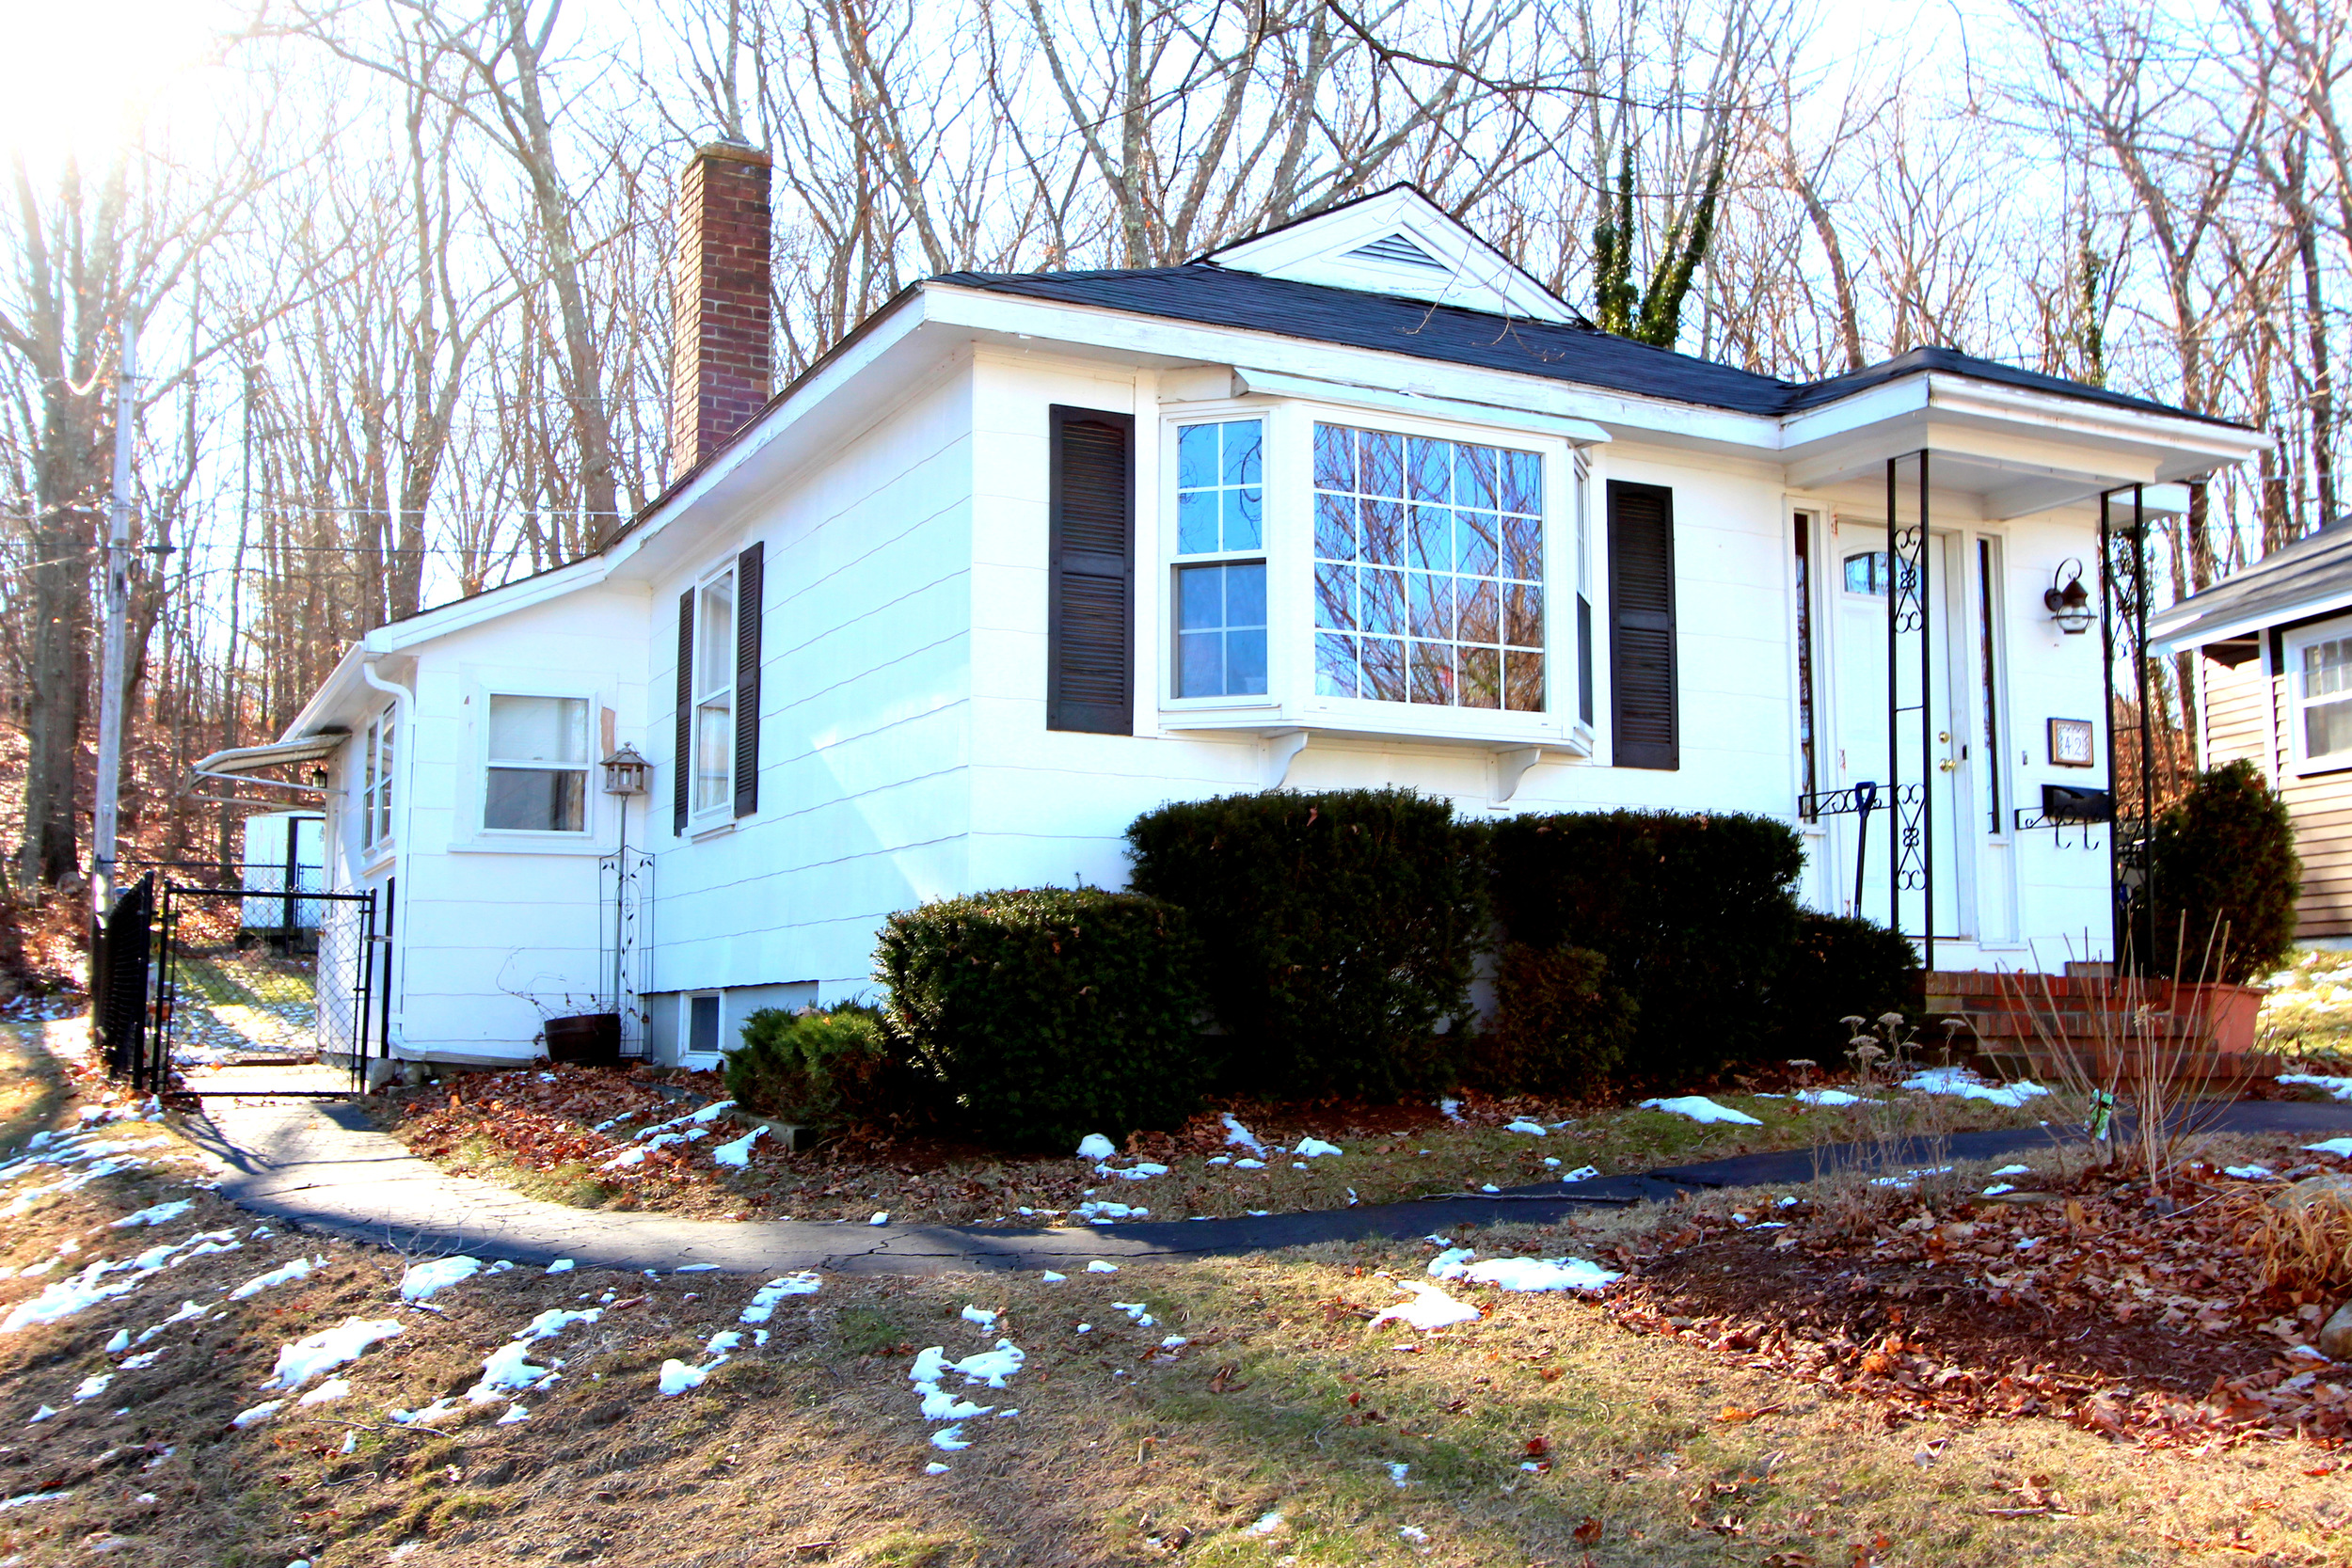 42 Hill St. Hopedale - Sold $150k (Sell and Buy Side)